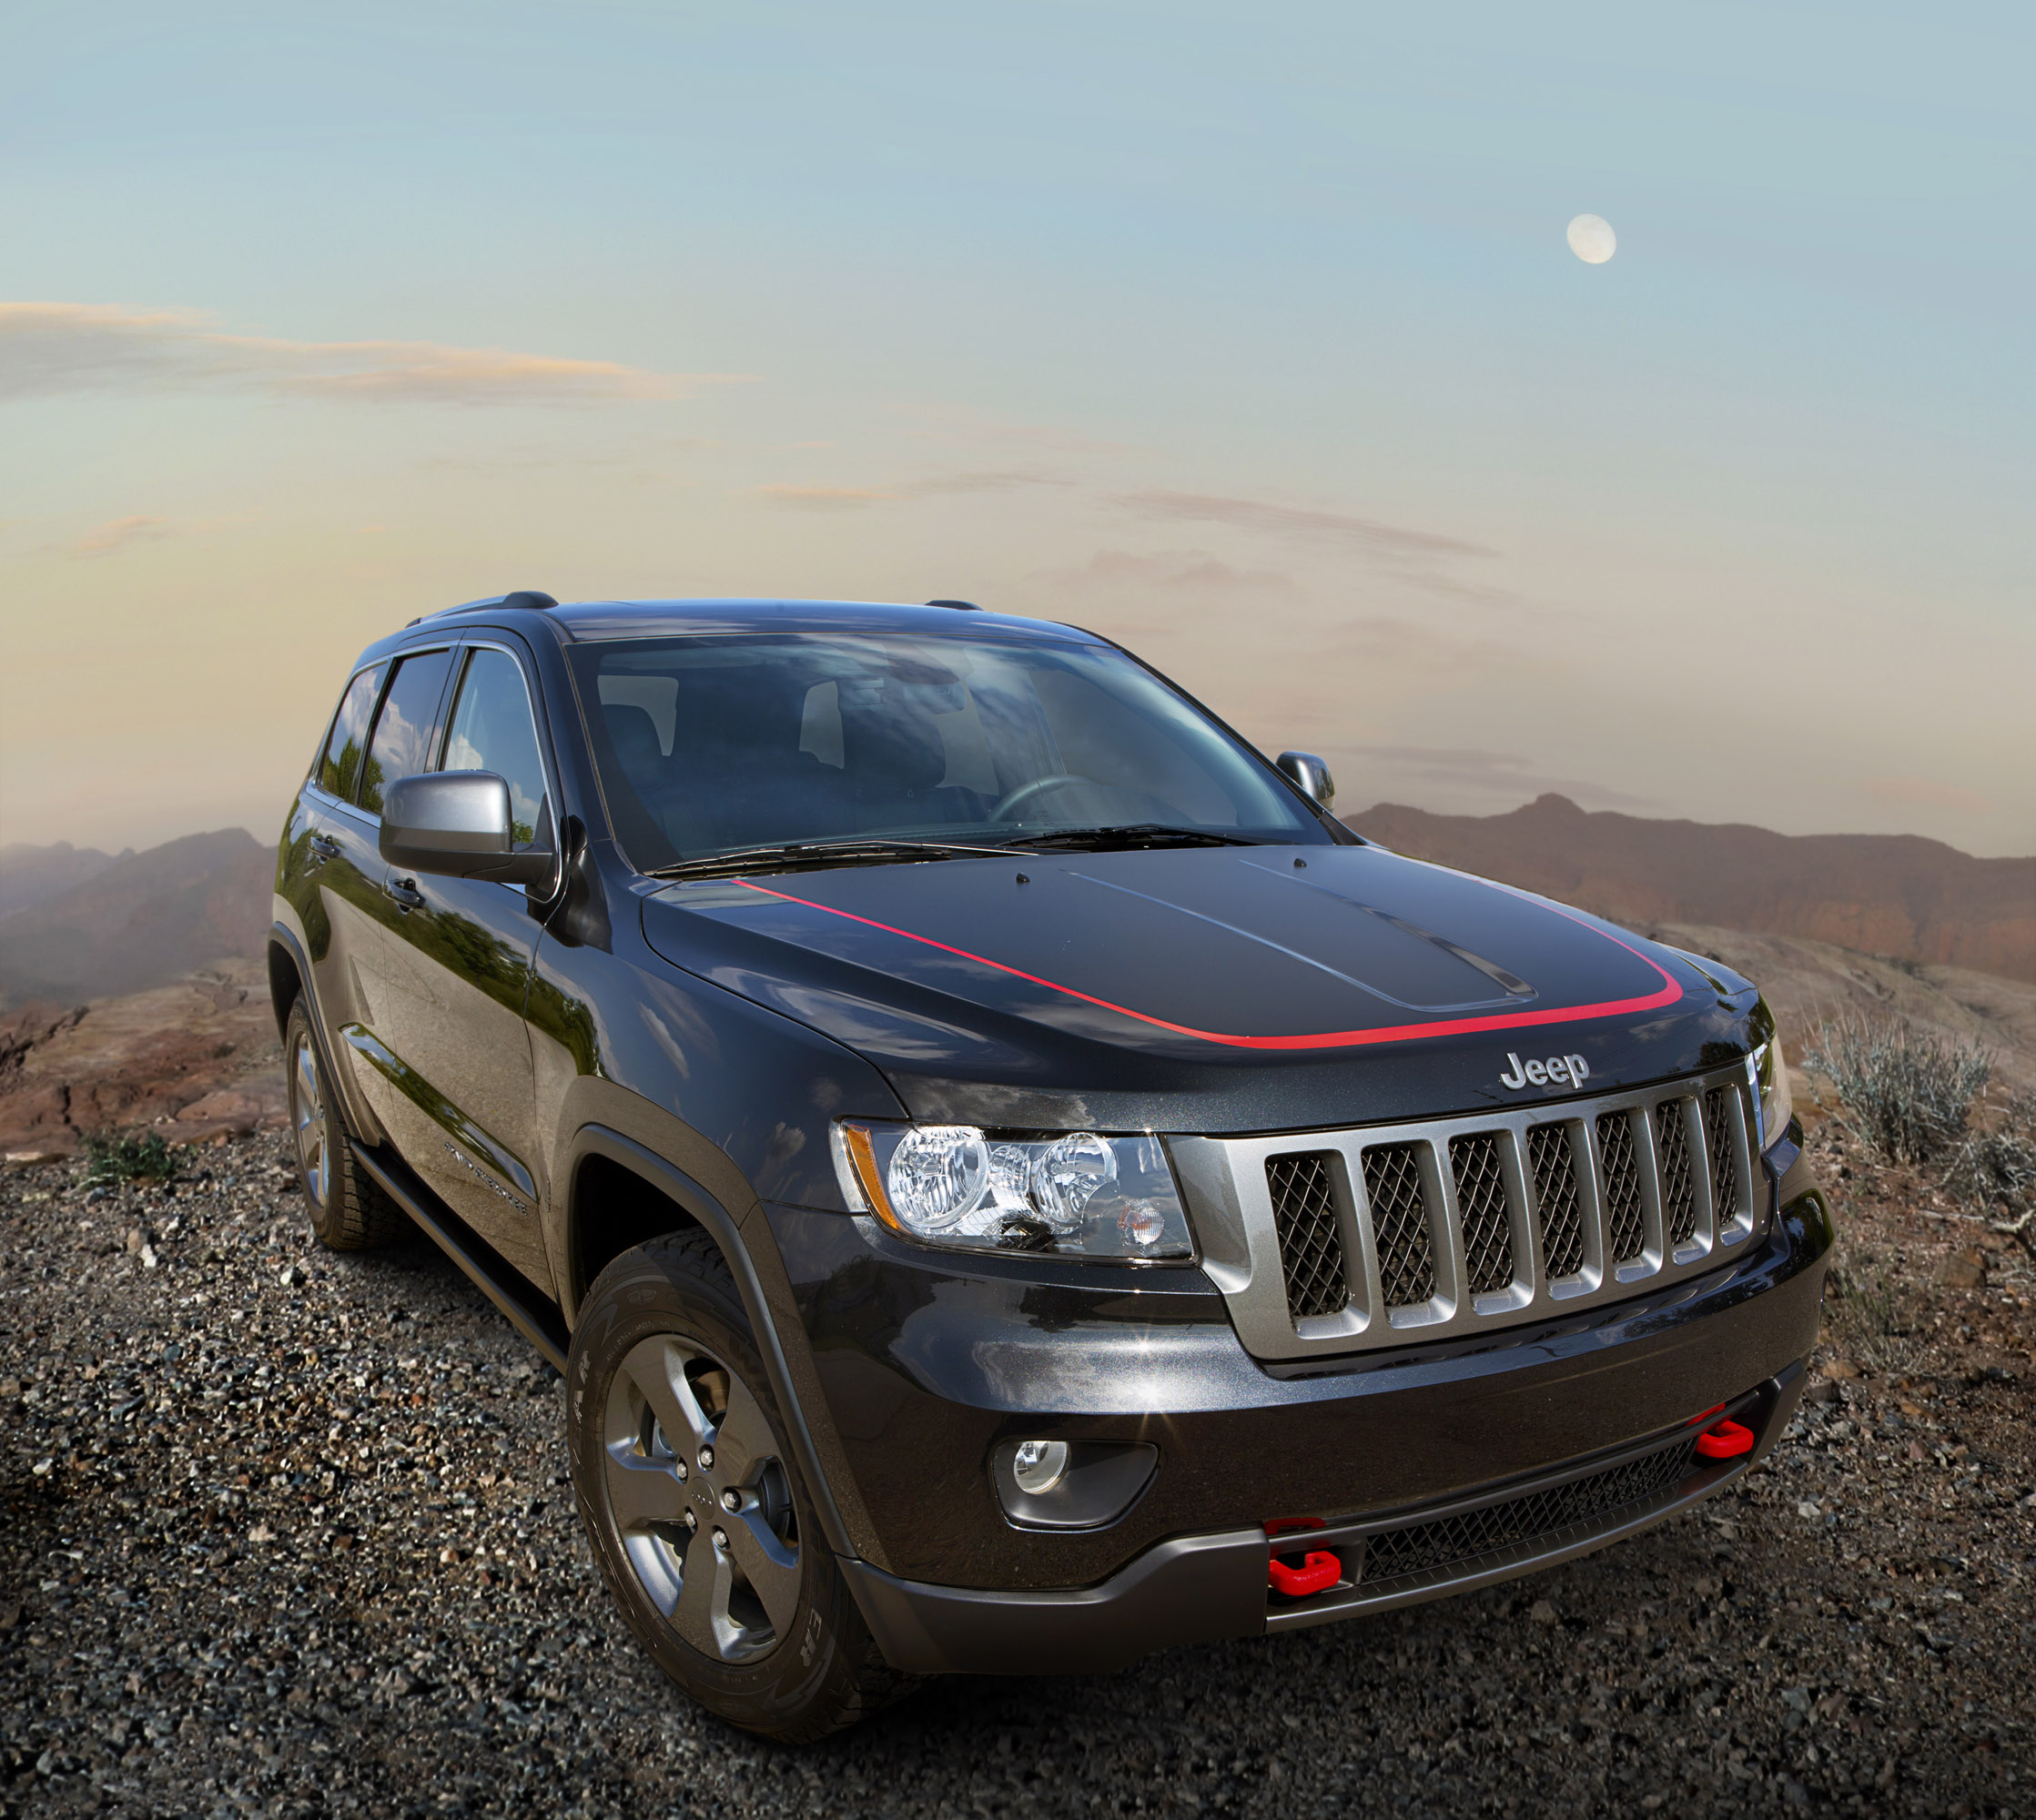 garage pricing grand and page information cherokee pin jeep ordering